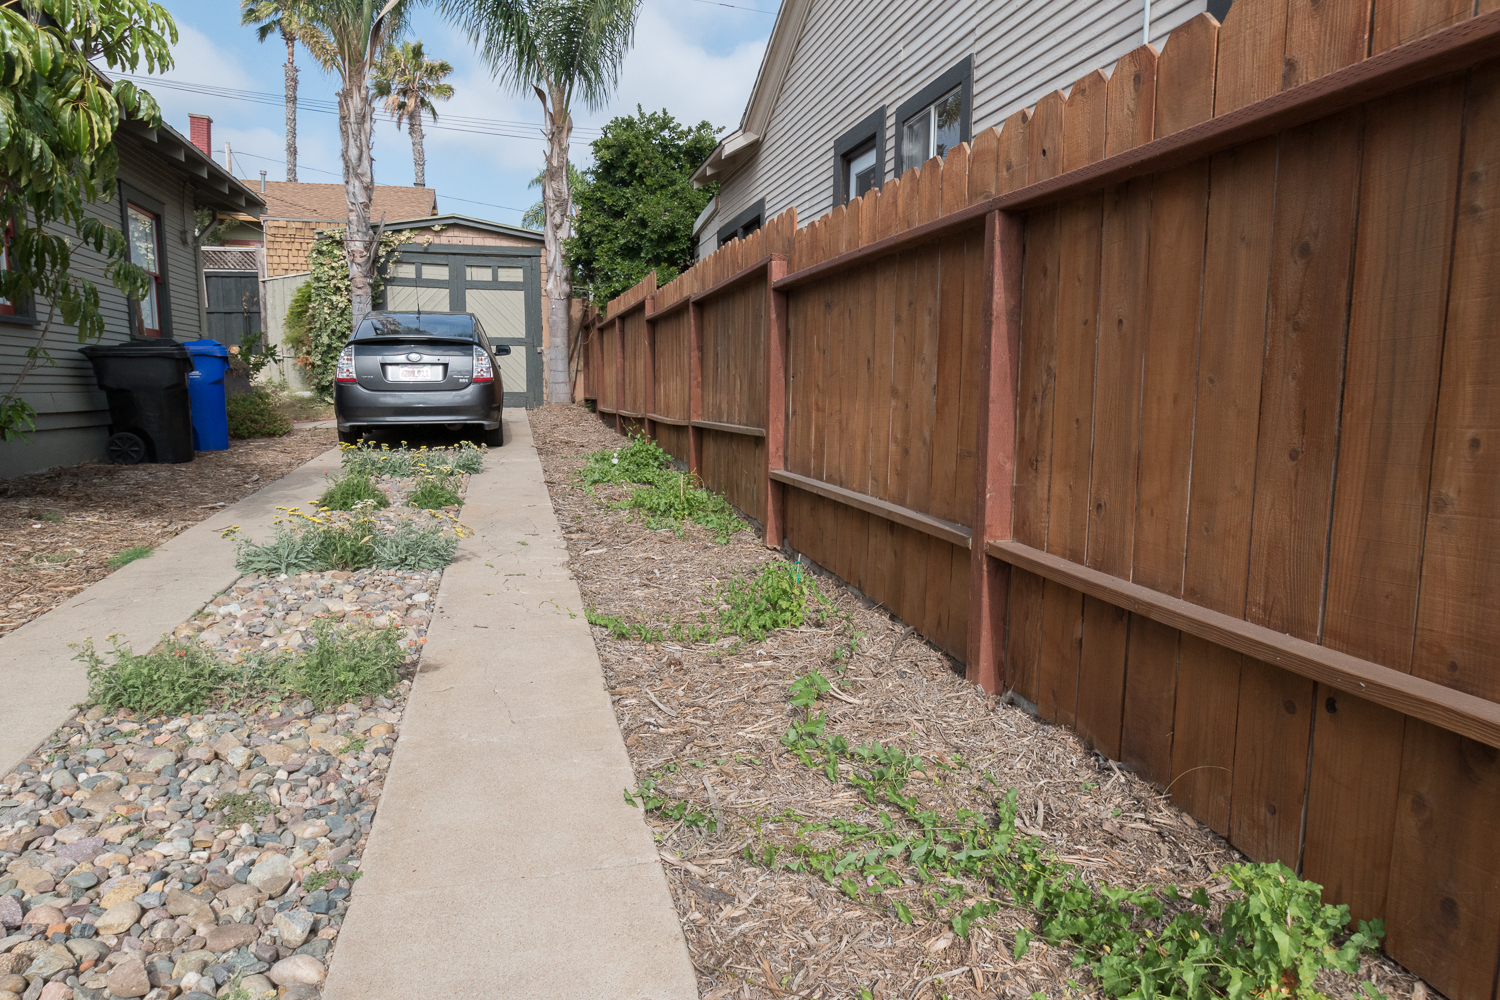 The Gold Hive How to Refresh a Fence - Powerwash-0005.jpg